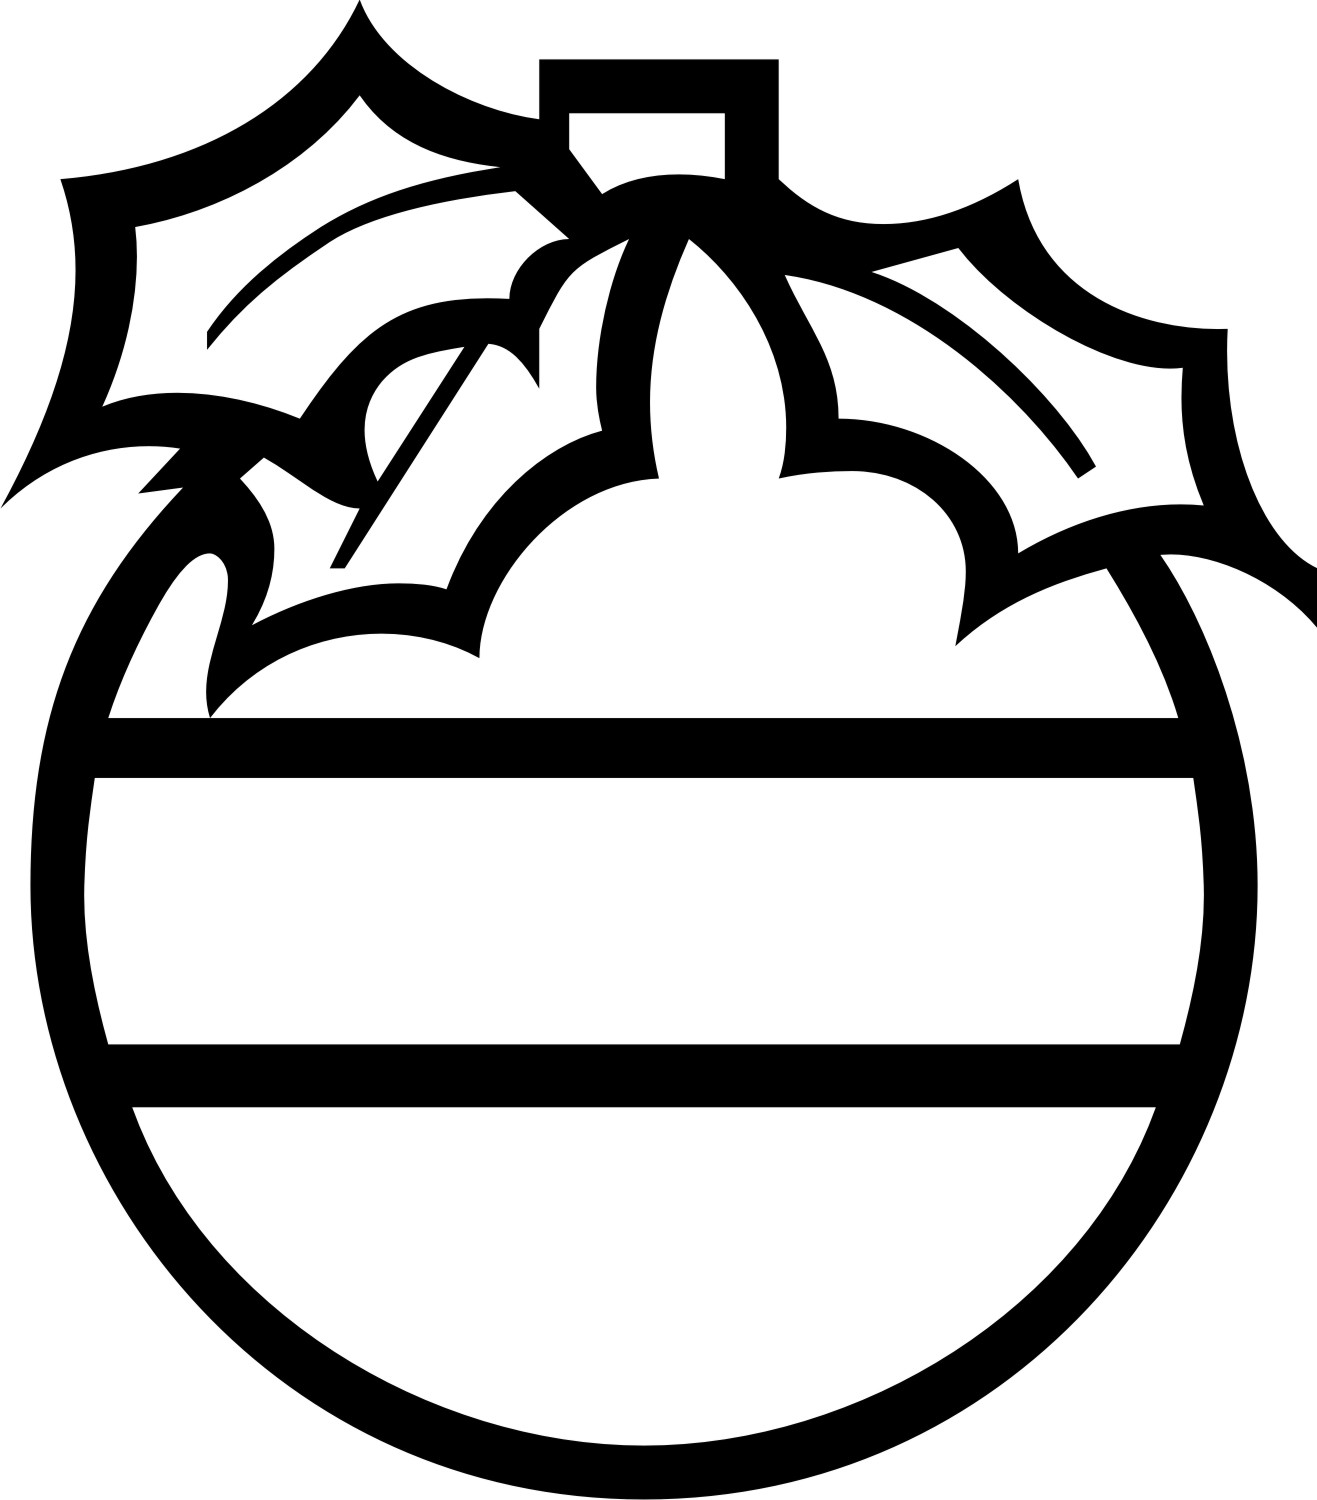 Christmas Ornament Clipart Black And White.